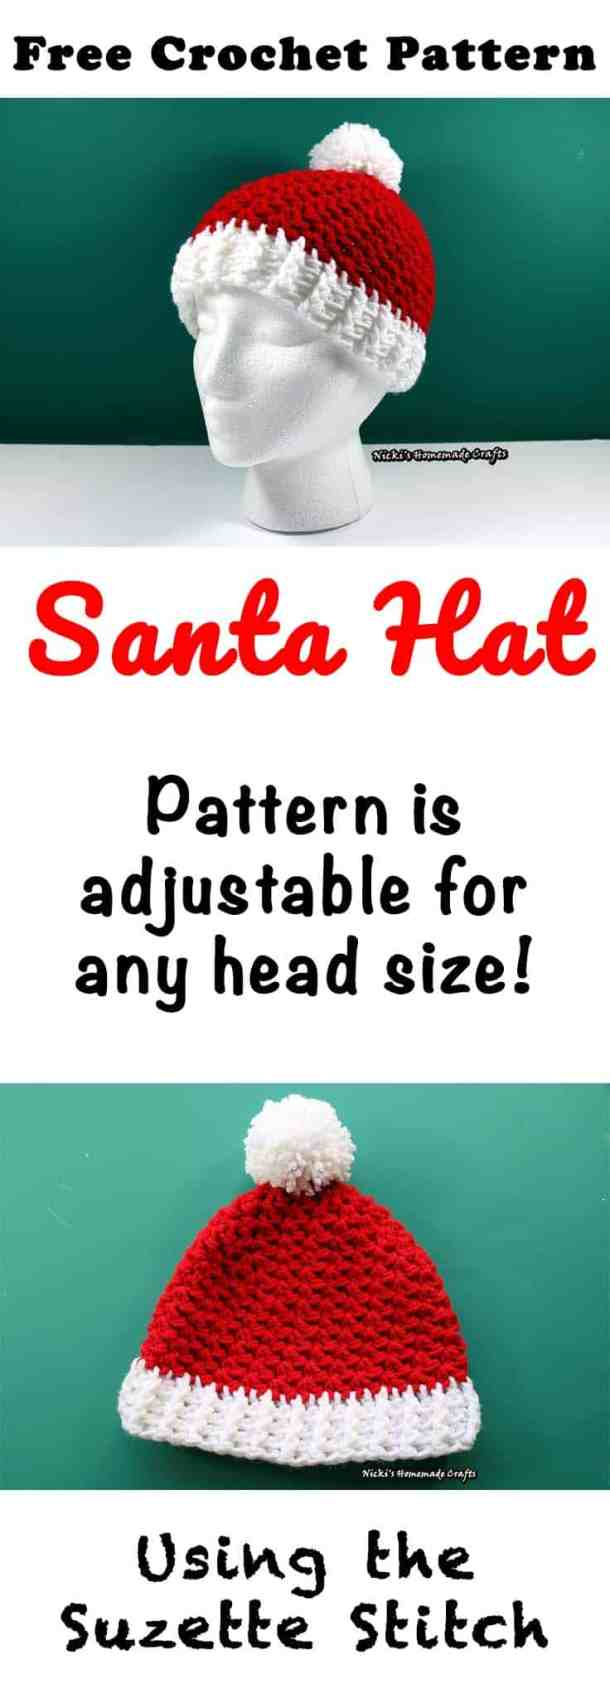 Santa Hat with Pom-pom - Free Crochet Pattern by Nicki's Homemade Crafts #crochet #Santa #christmas #hat #beanie #suzette #stitch #beginner #easy